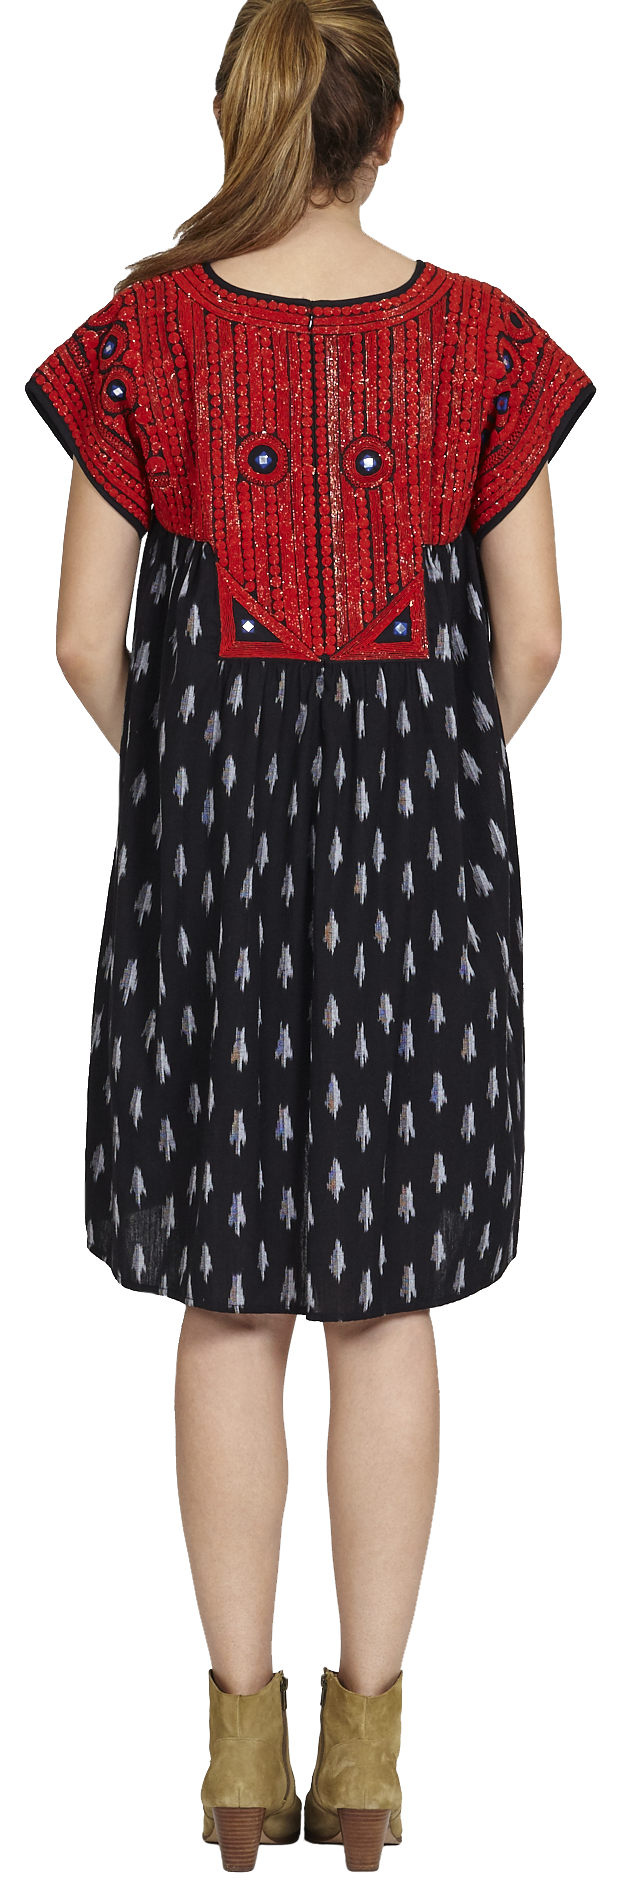 View larger version of Pink Chicken Juno Dress xs black ikat w/red embroidery - 18ffpcw187a